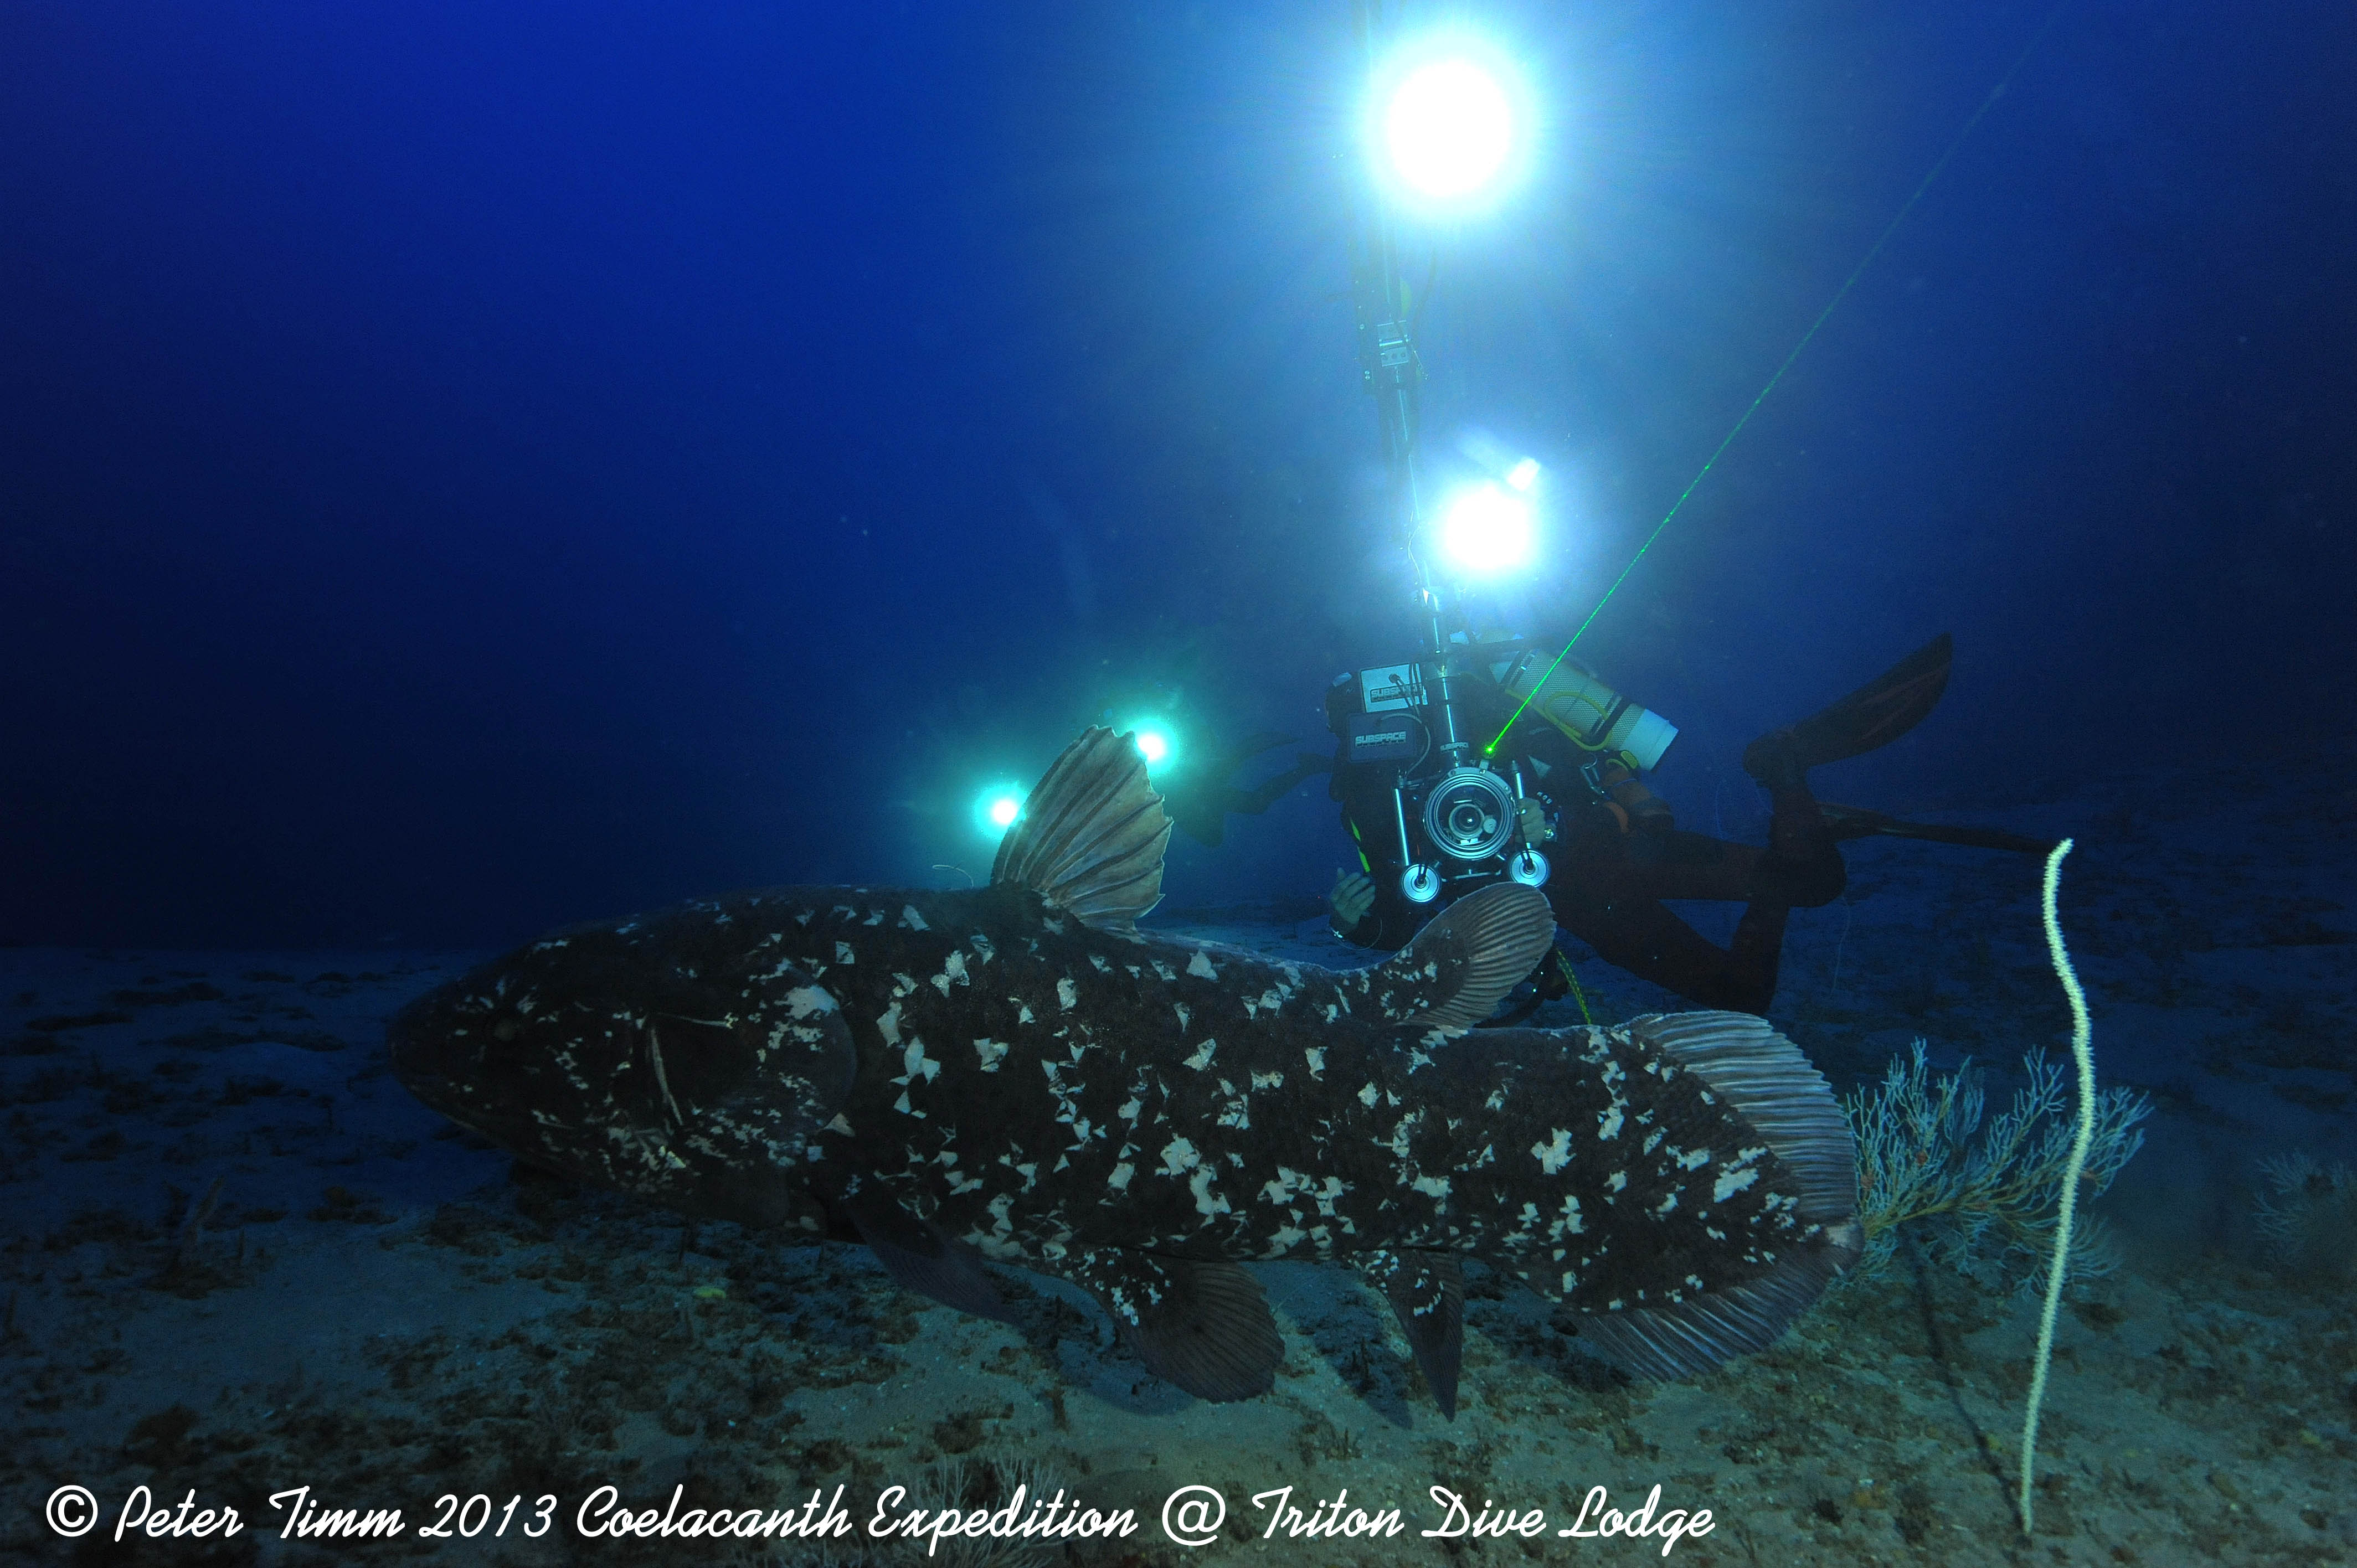 Triton Dive Lodge has been at the forefront of Coelacanth research in Sodwana Bay